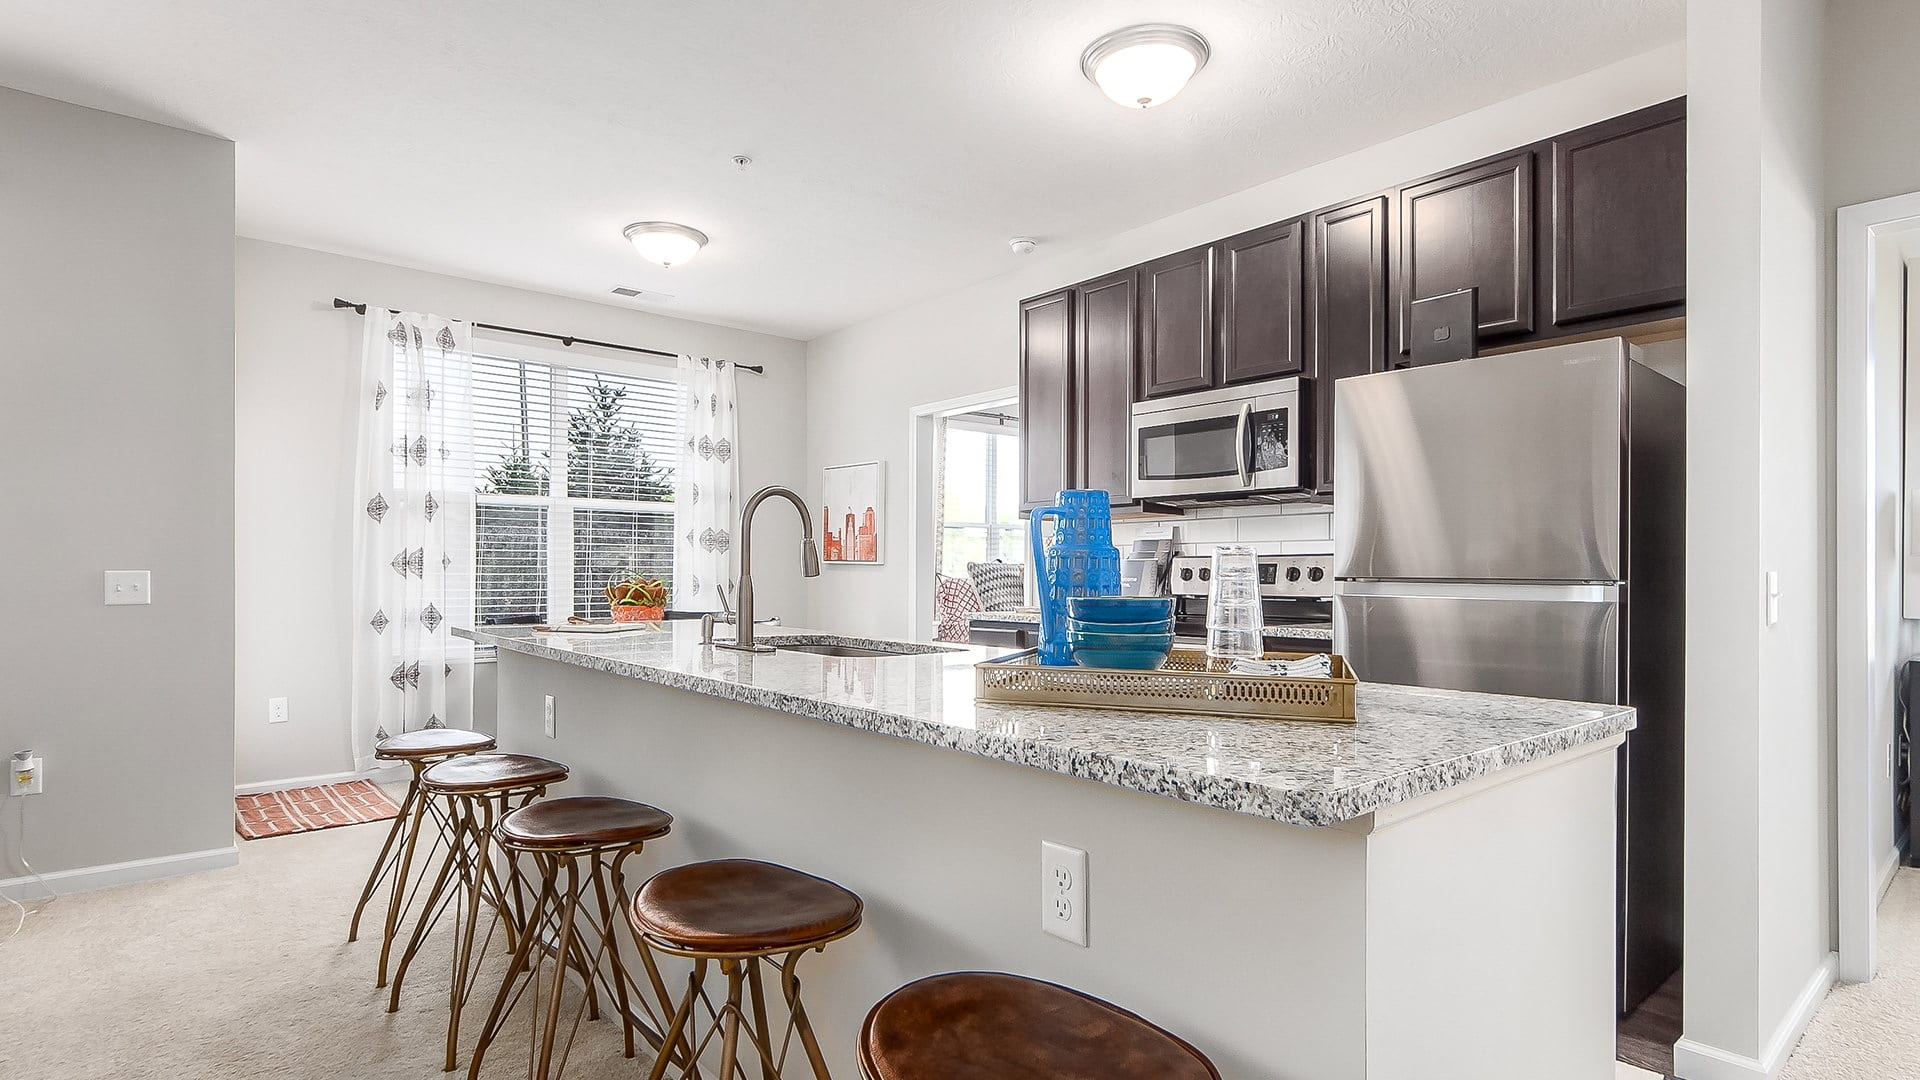 Spacious and well lit kitchen with tiles floors and stainless steel appliances